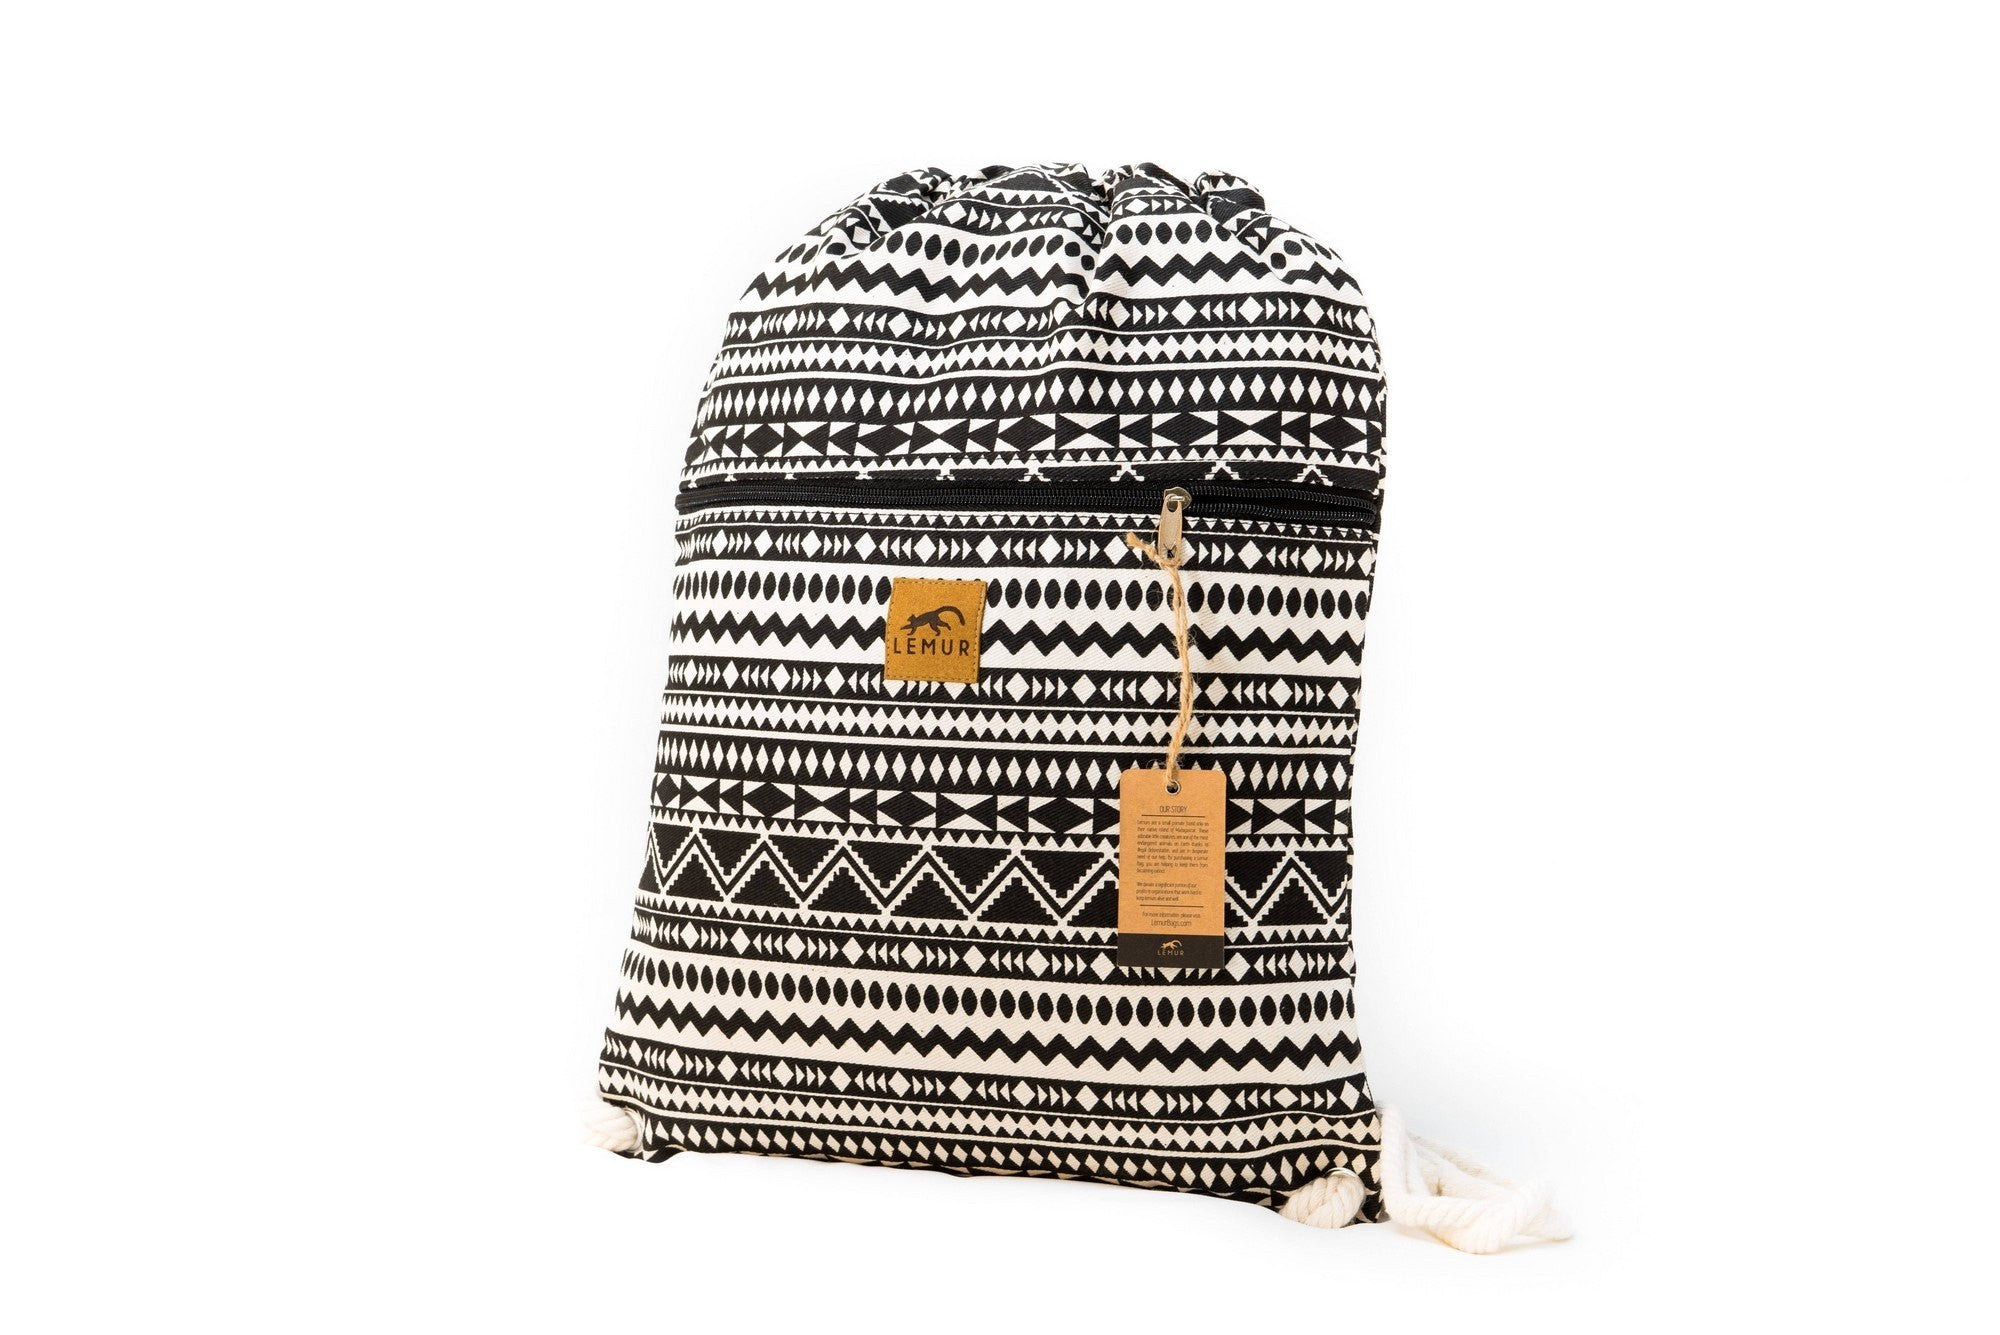 33a9555815fe Drawstring Backpack - Drawstring Backpack - Canvas Cinch Daypack Sackpack  By Lemur Bags (Aztec Tribal